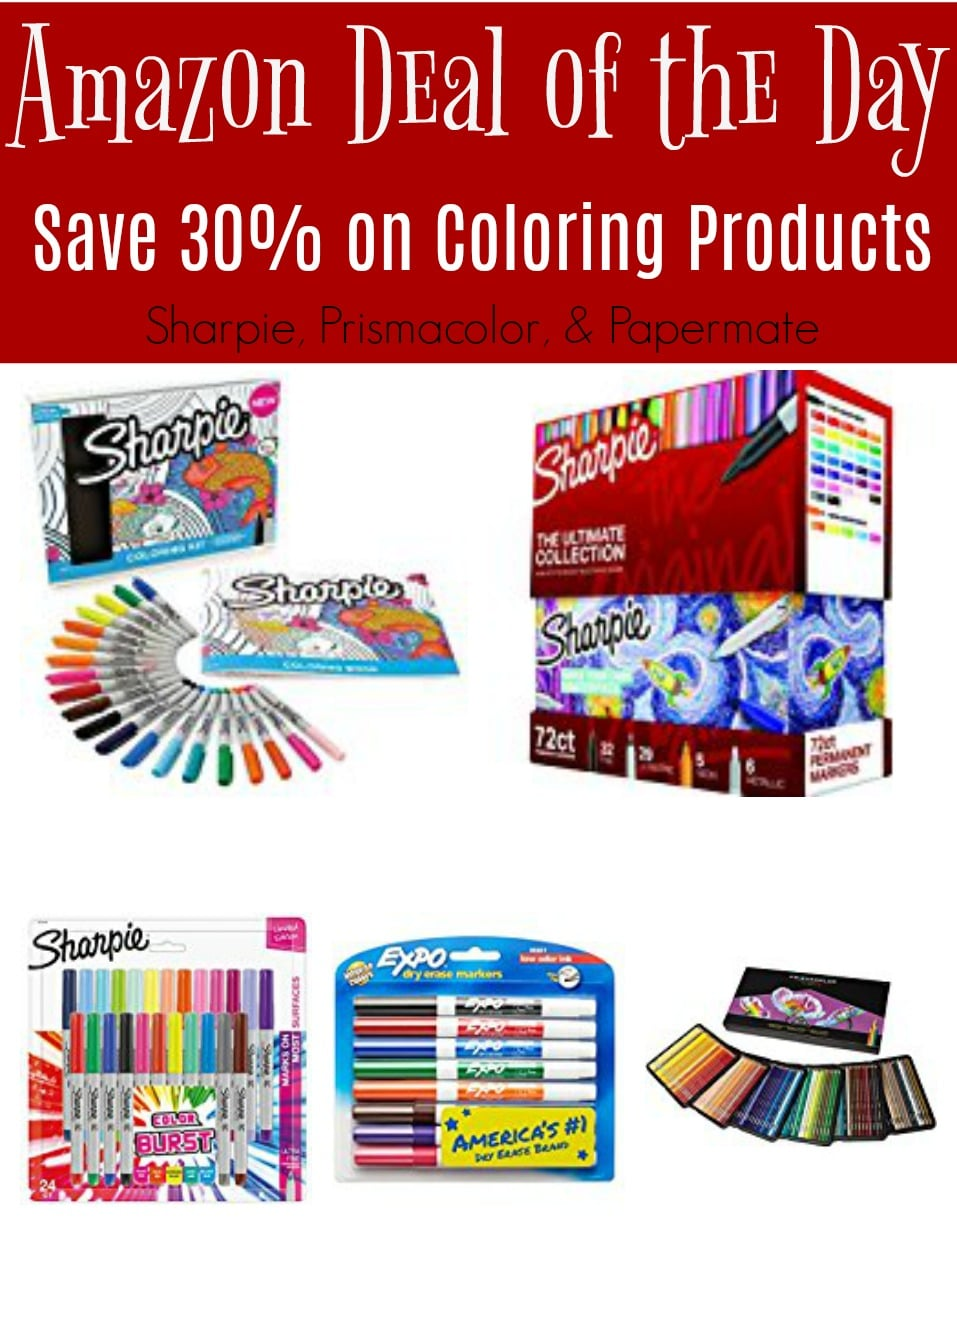 coloring products collage